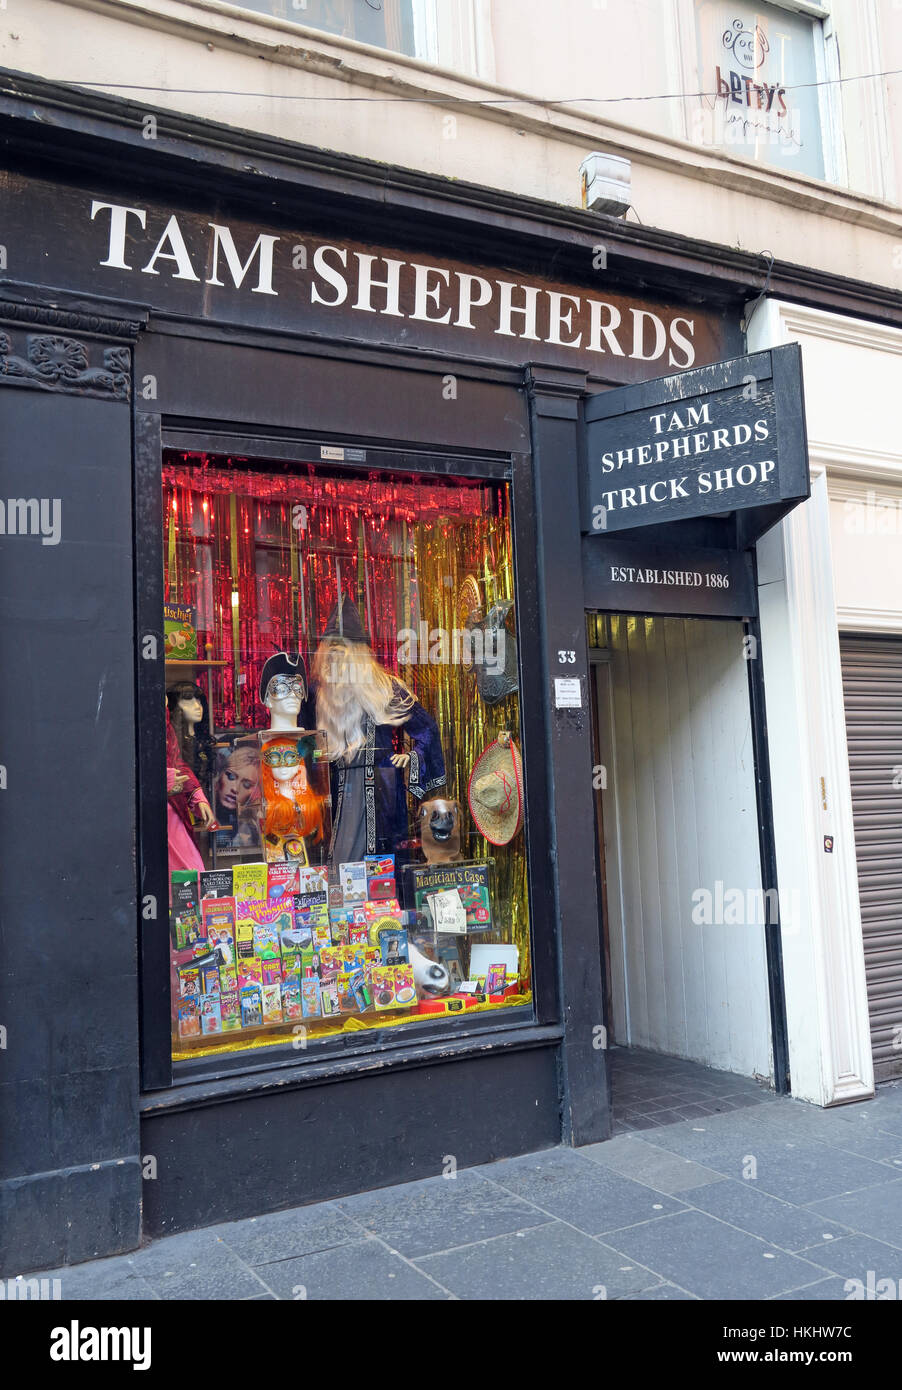 Tam Shephards Glasgow Joke Shop, - Stock Image